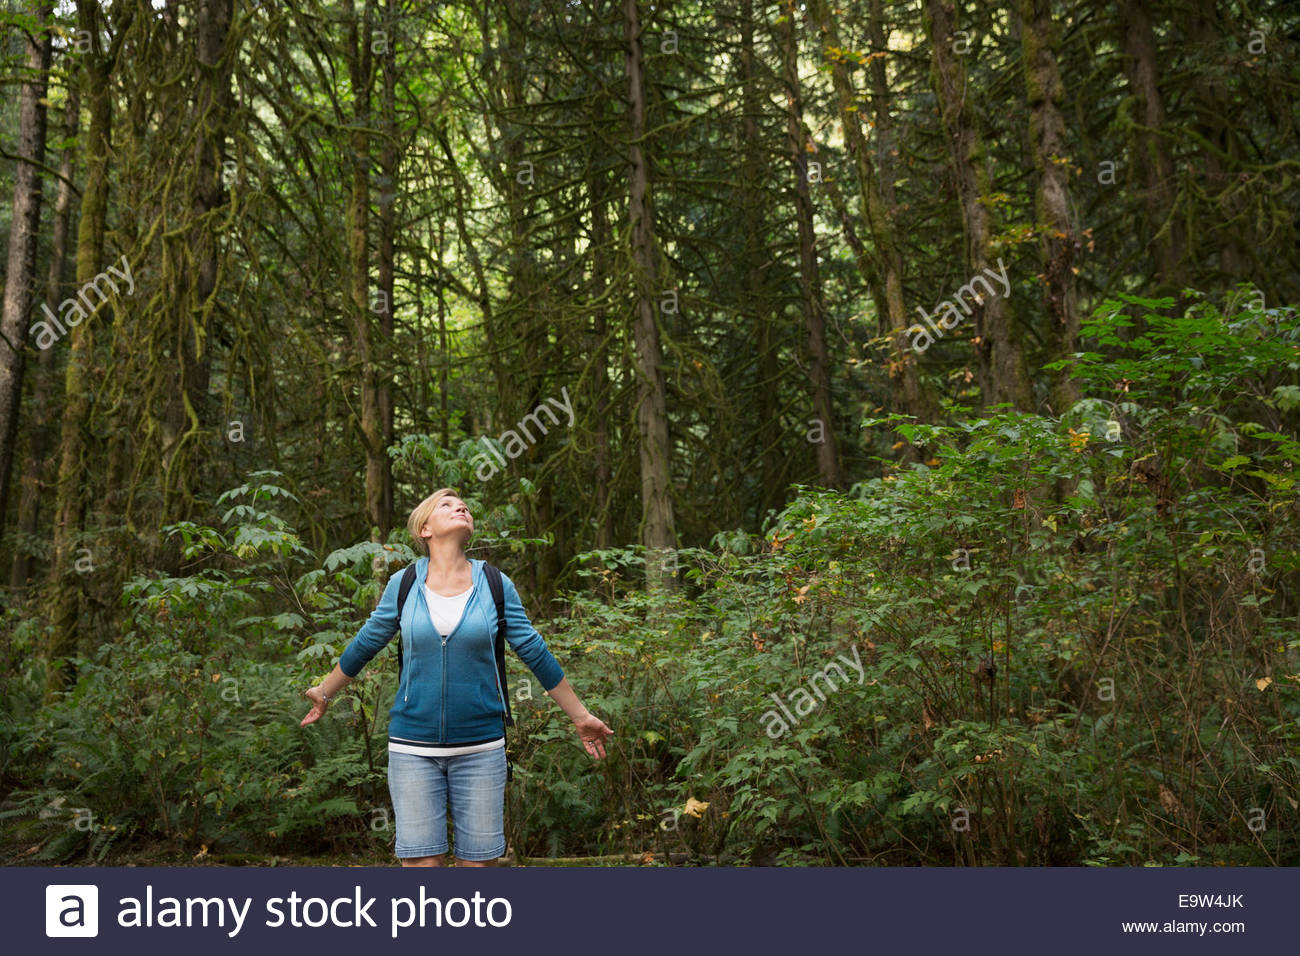 Woman with arms outstretched in woods - Stock Image